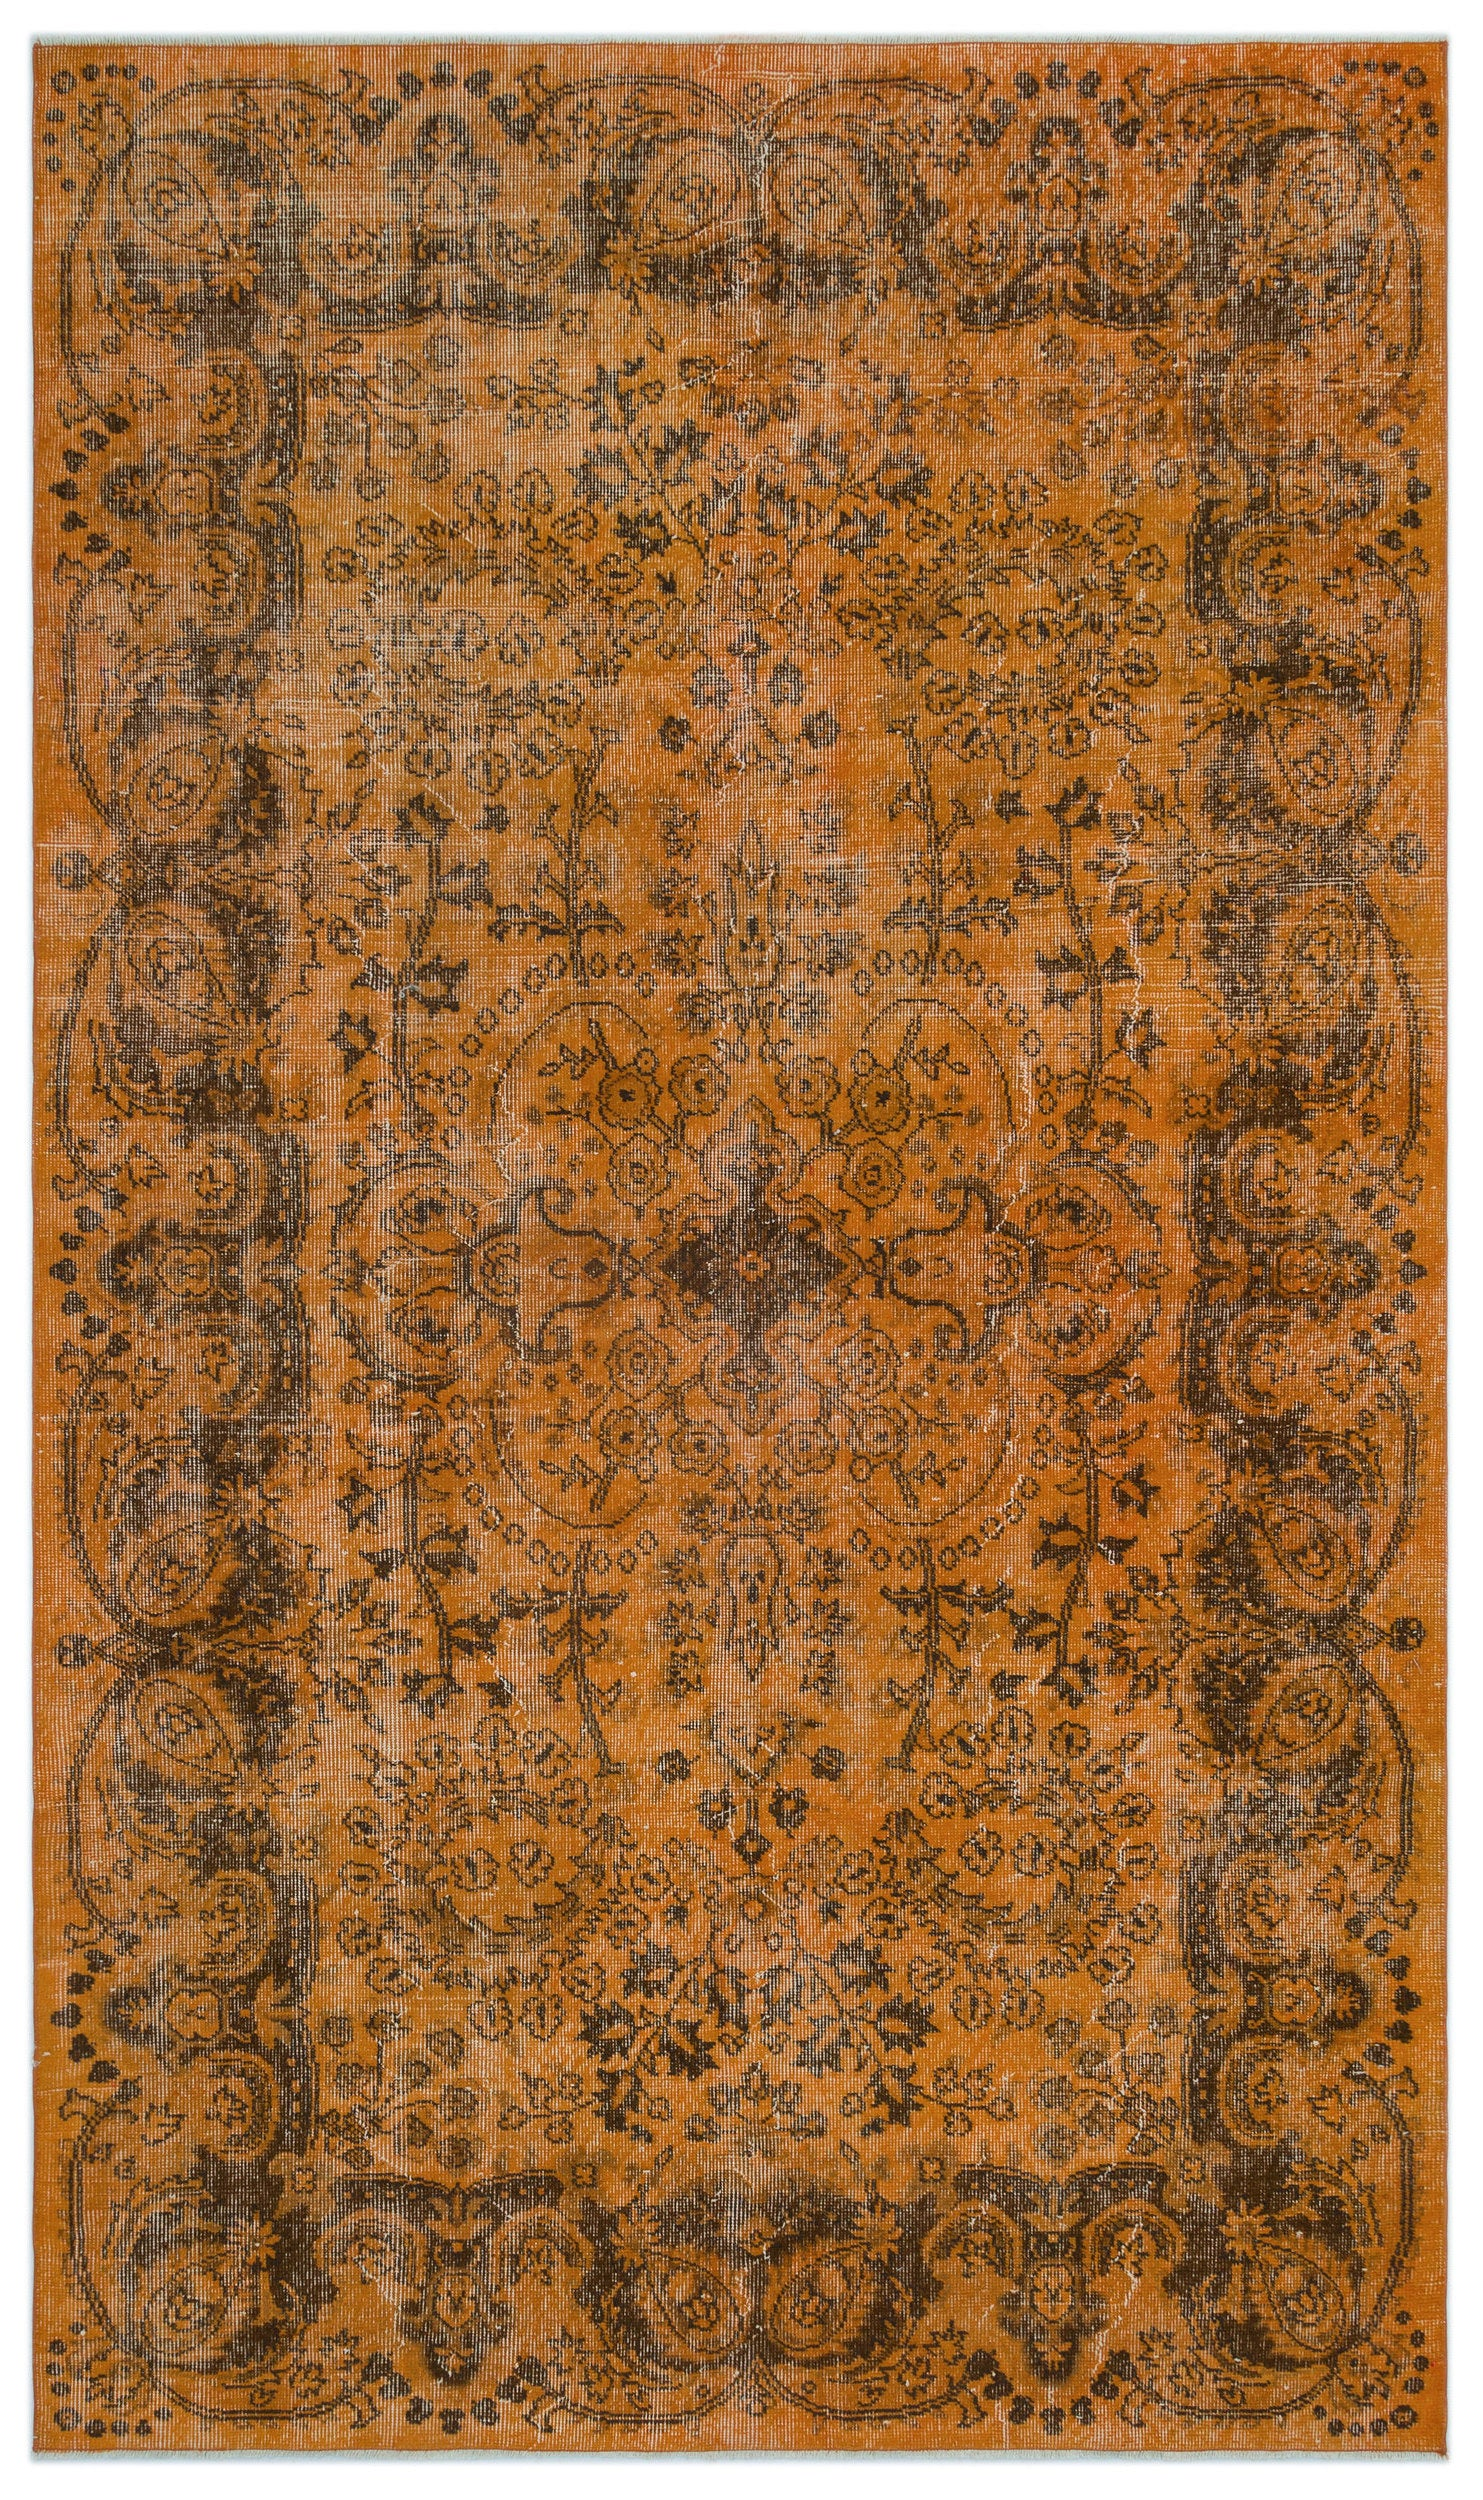 Orange Over Dyed Vintage Rug 5'7'' x 9'5'' ft 169 x 288 cm